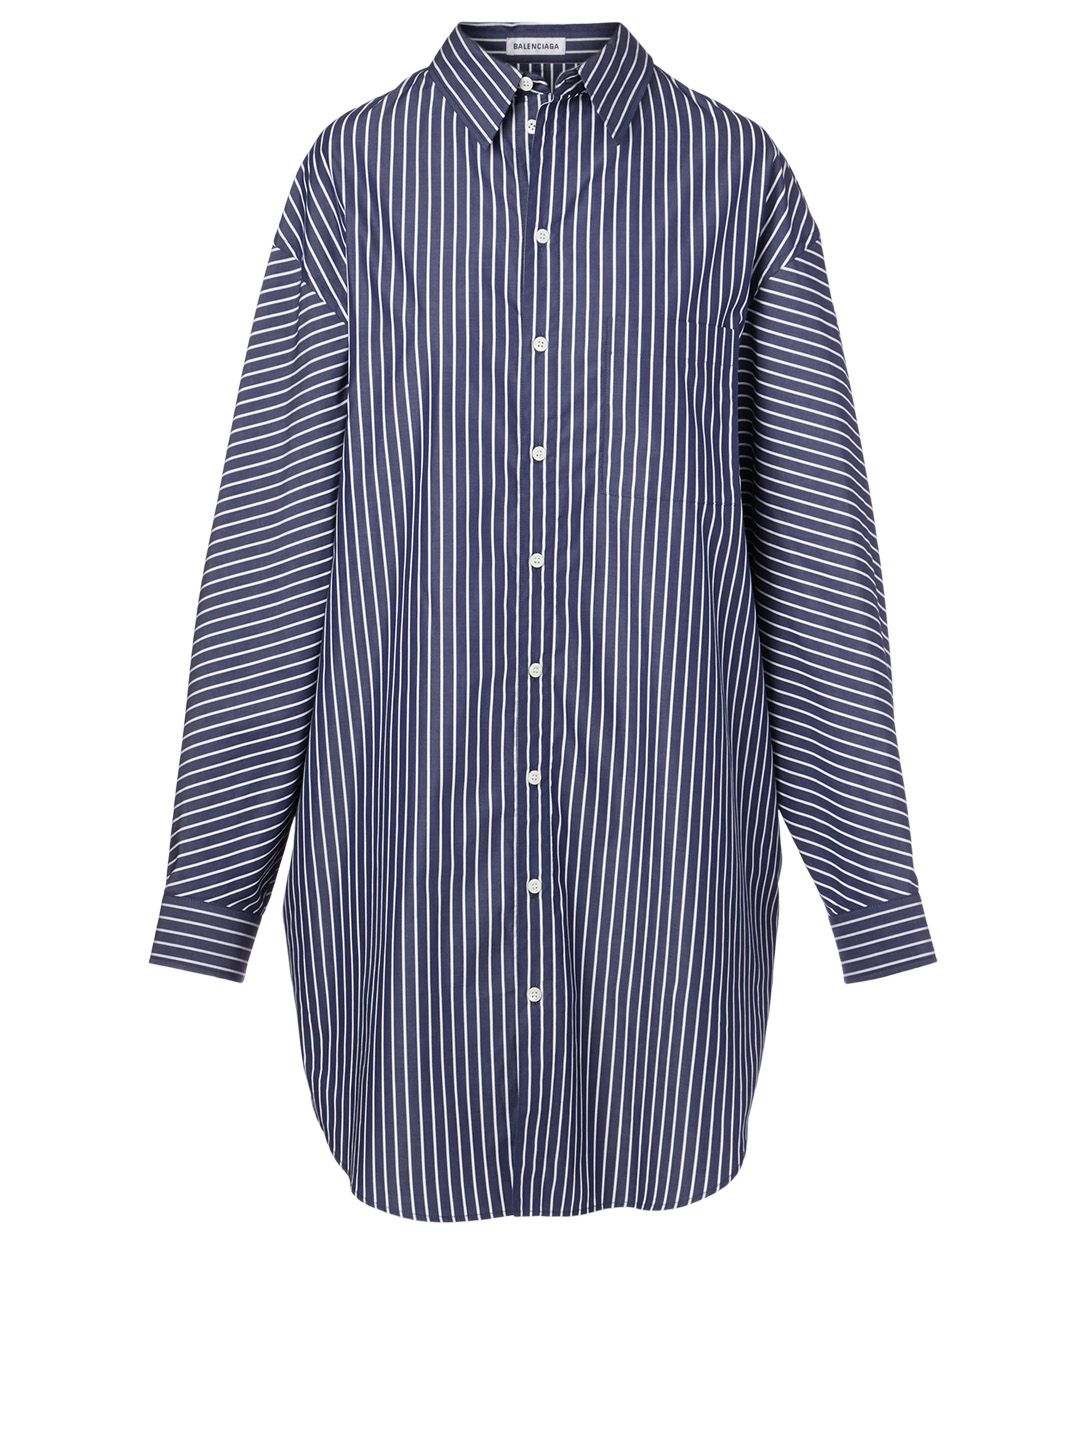 BALENCIAGA Cotton Shirt Dress In Stripe Print Women's Blue